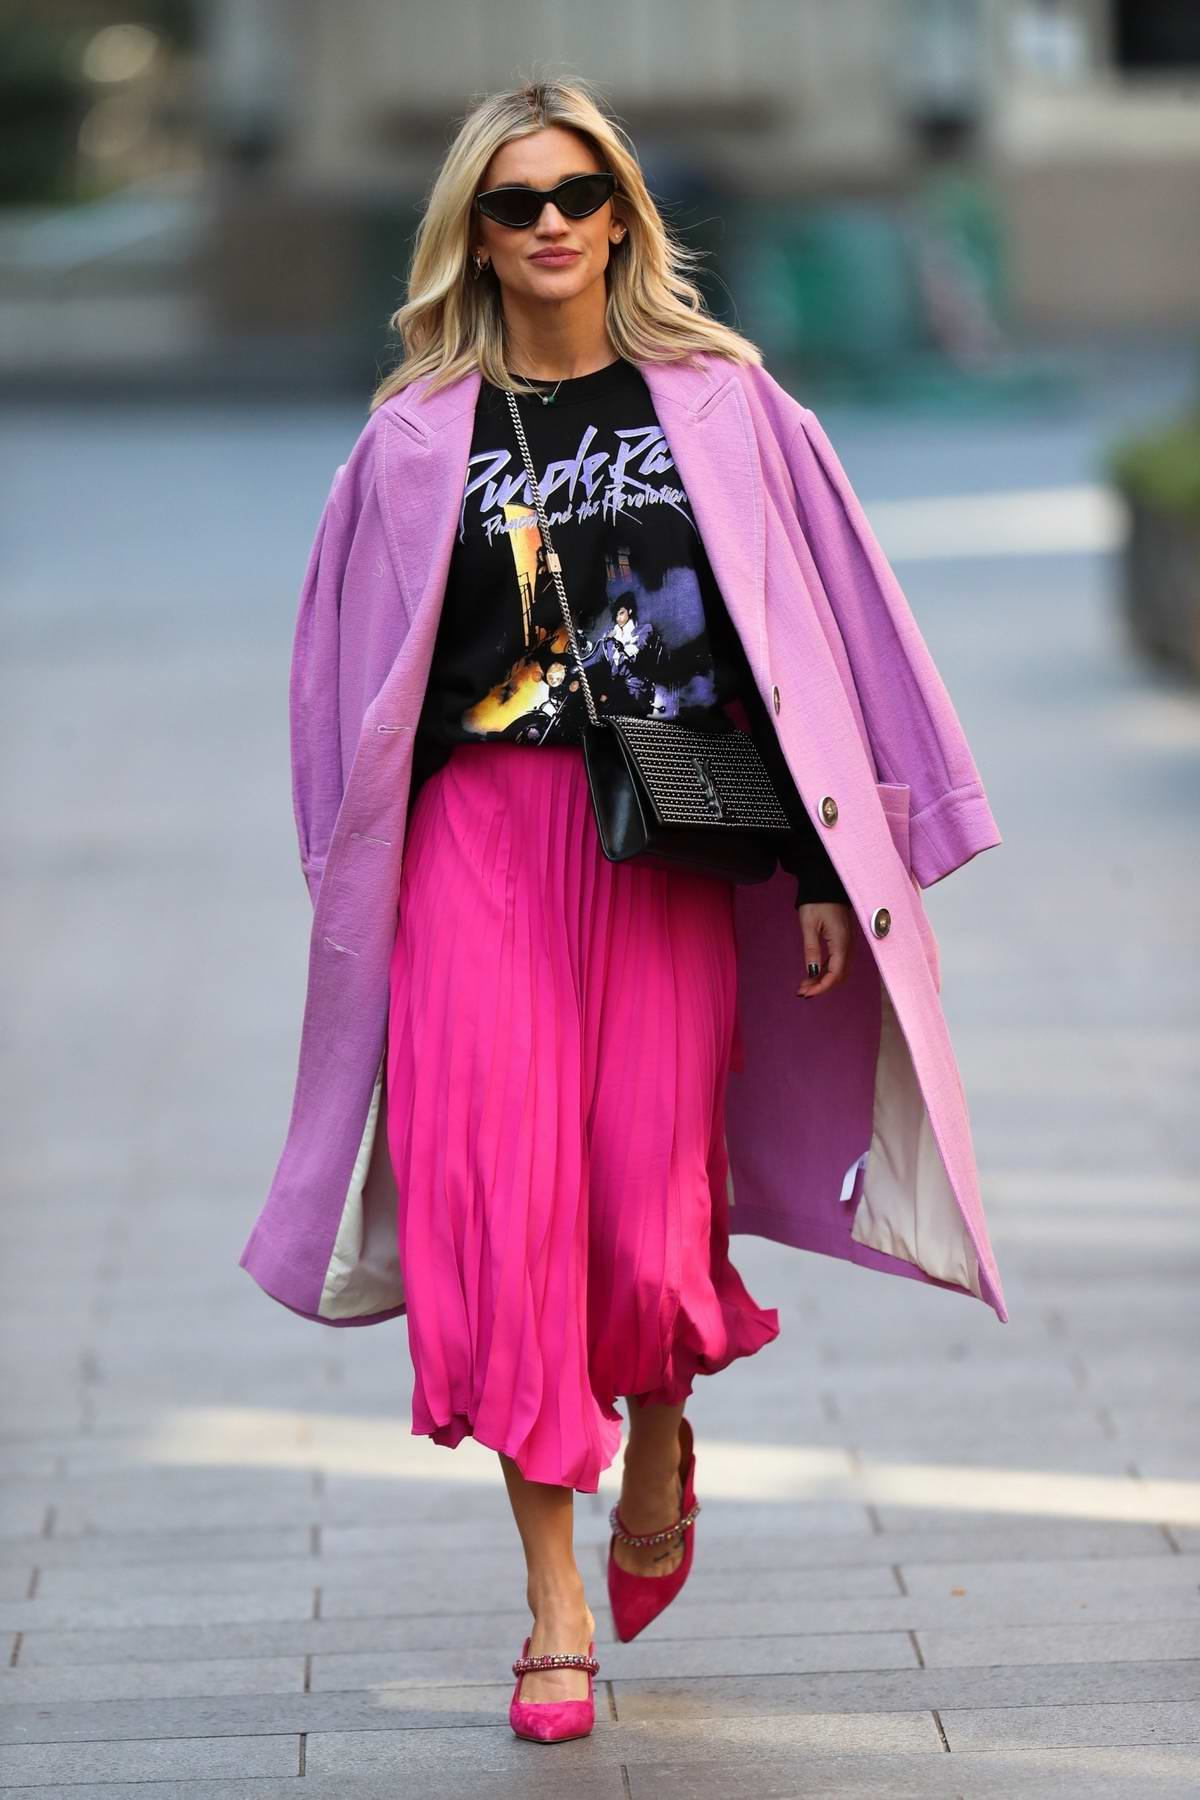 Ashley Roberts looks pretty in bubble gum pink skirt while leaving Heart Radio Show in London, UK